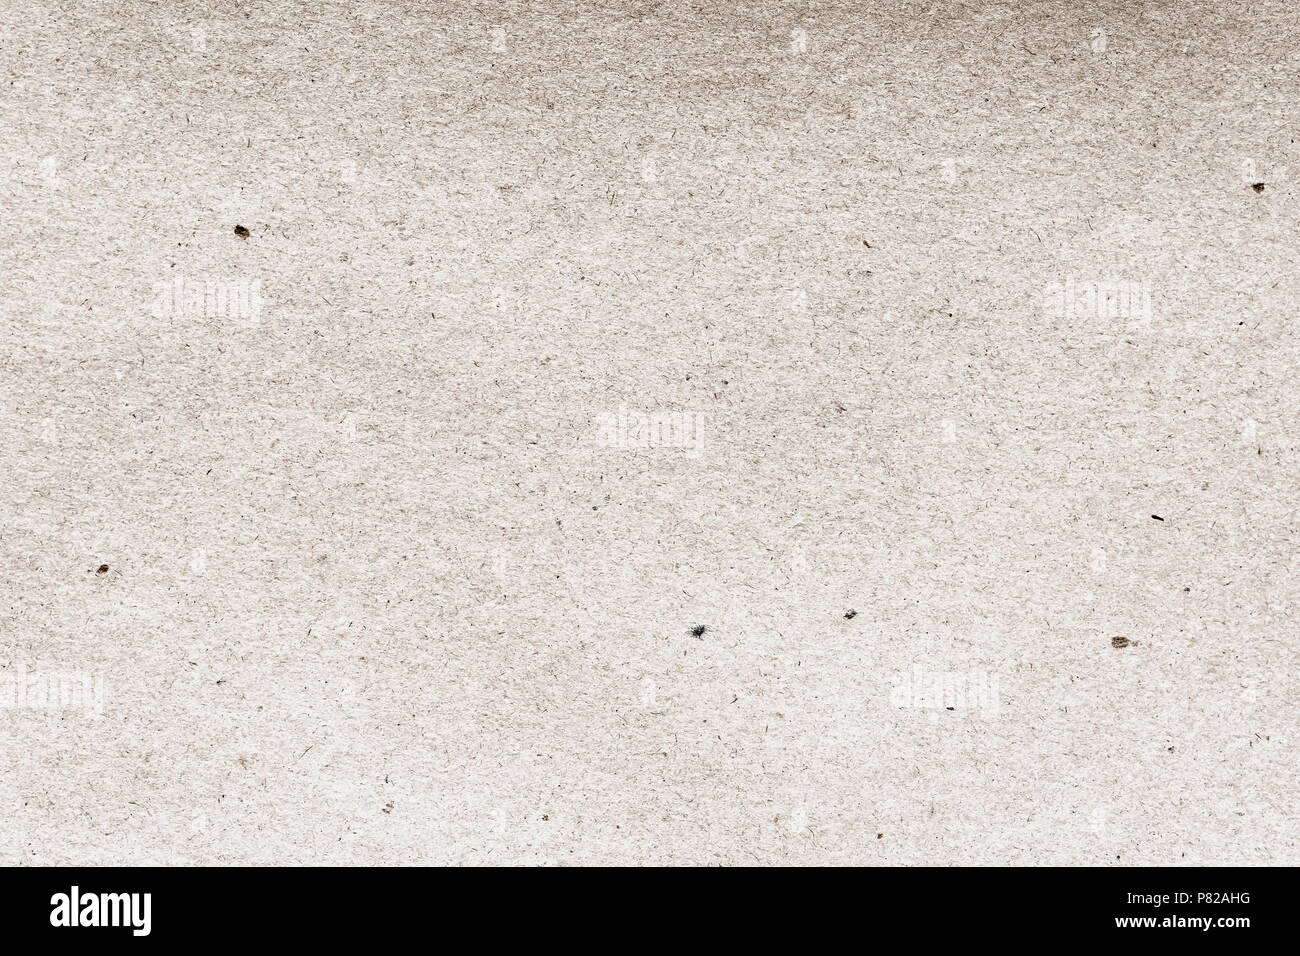 Vintage paper texture cardboard background close-up. Grunge old paper surface texture. Backdrop, substrate, composition use with copy space - Stock Image